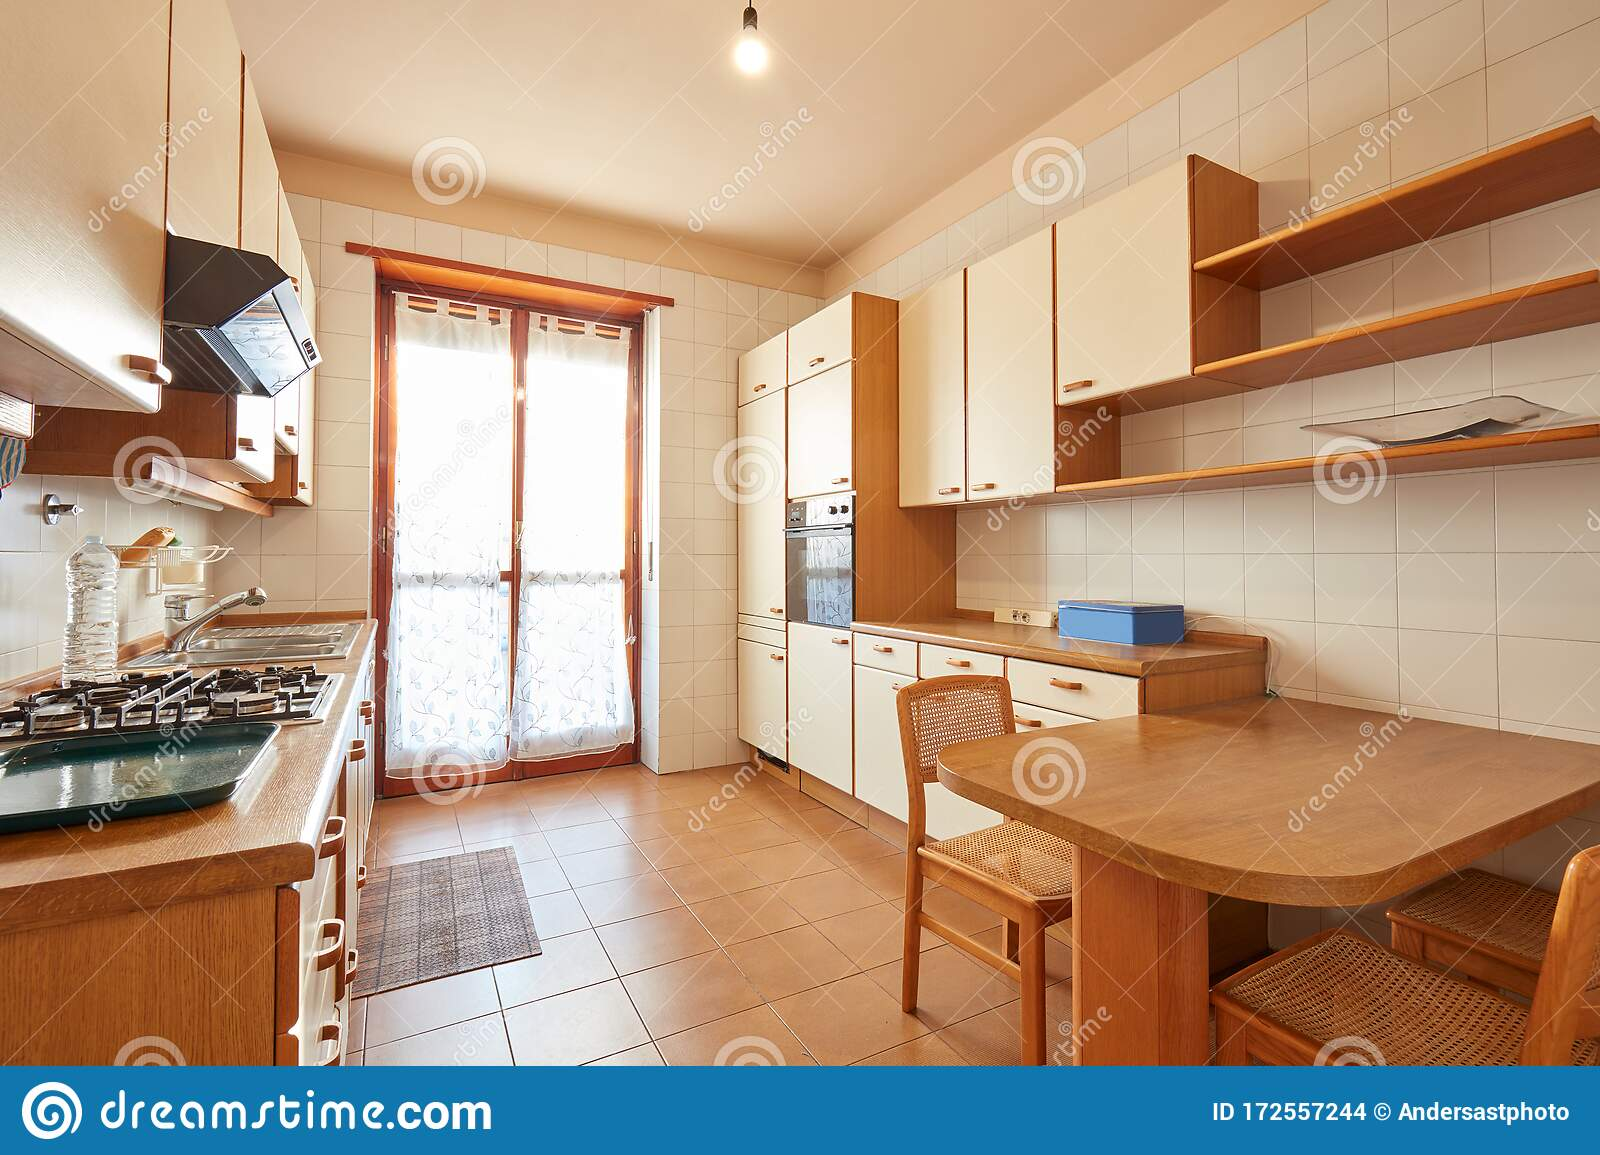 Kitchen Interior With Wooden Table In A Sunny Day In Normal ...